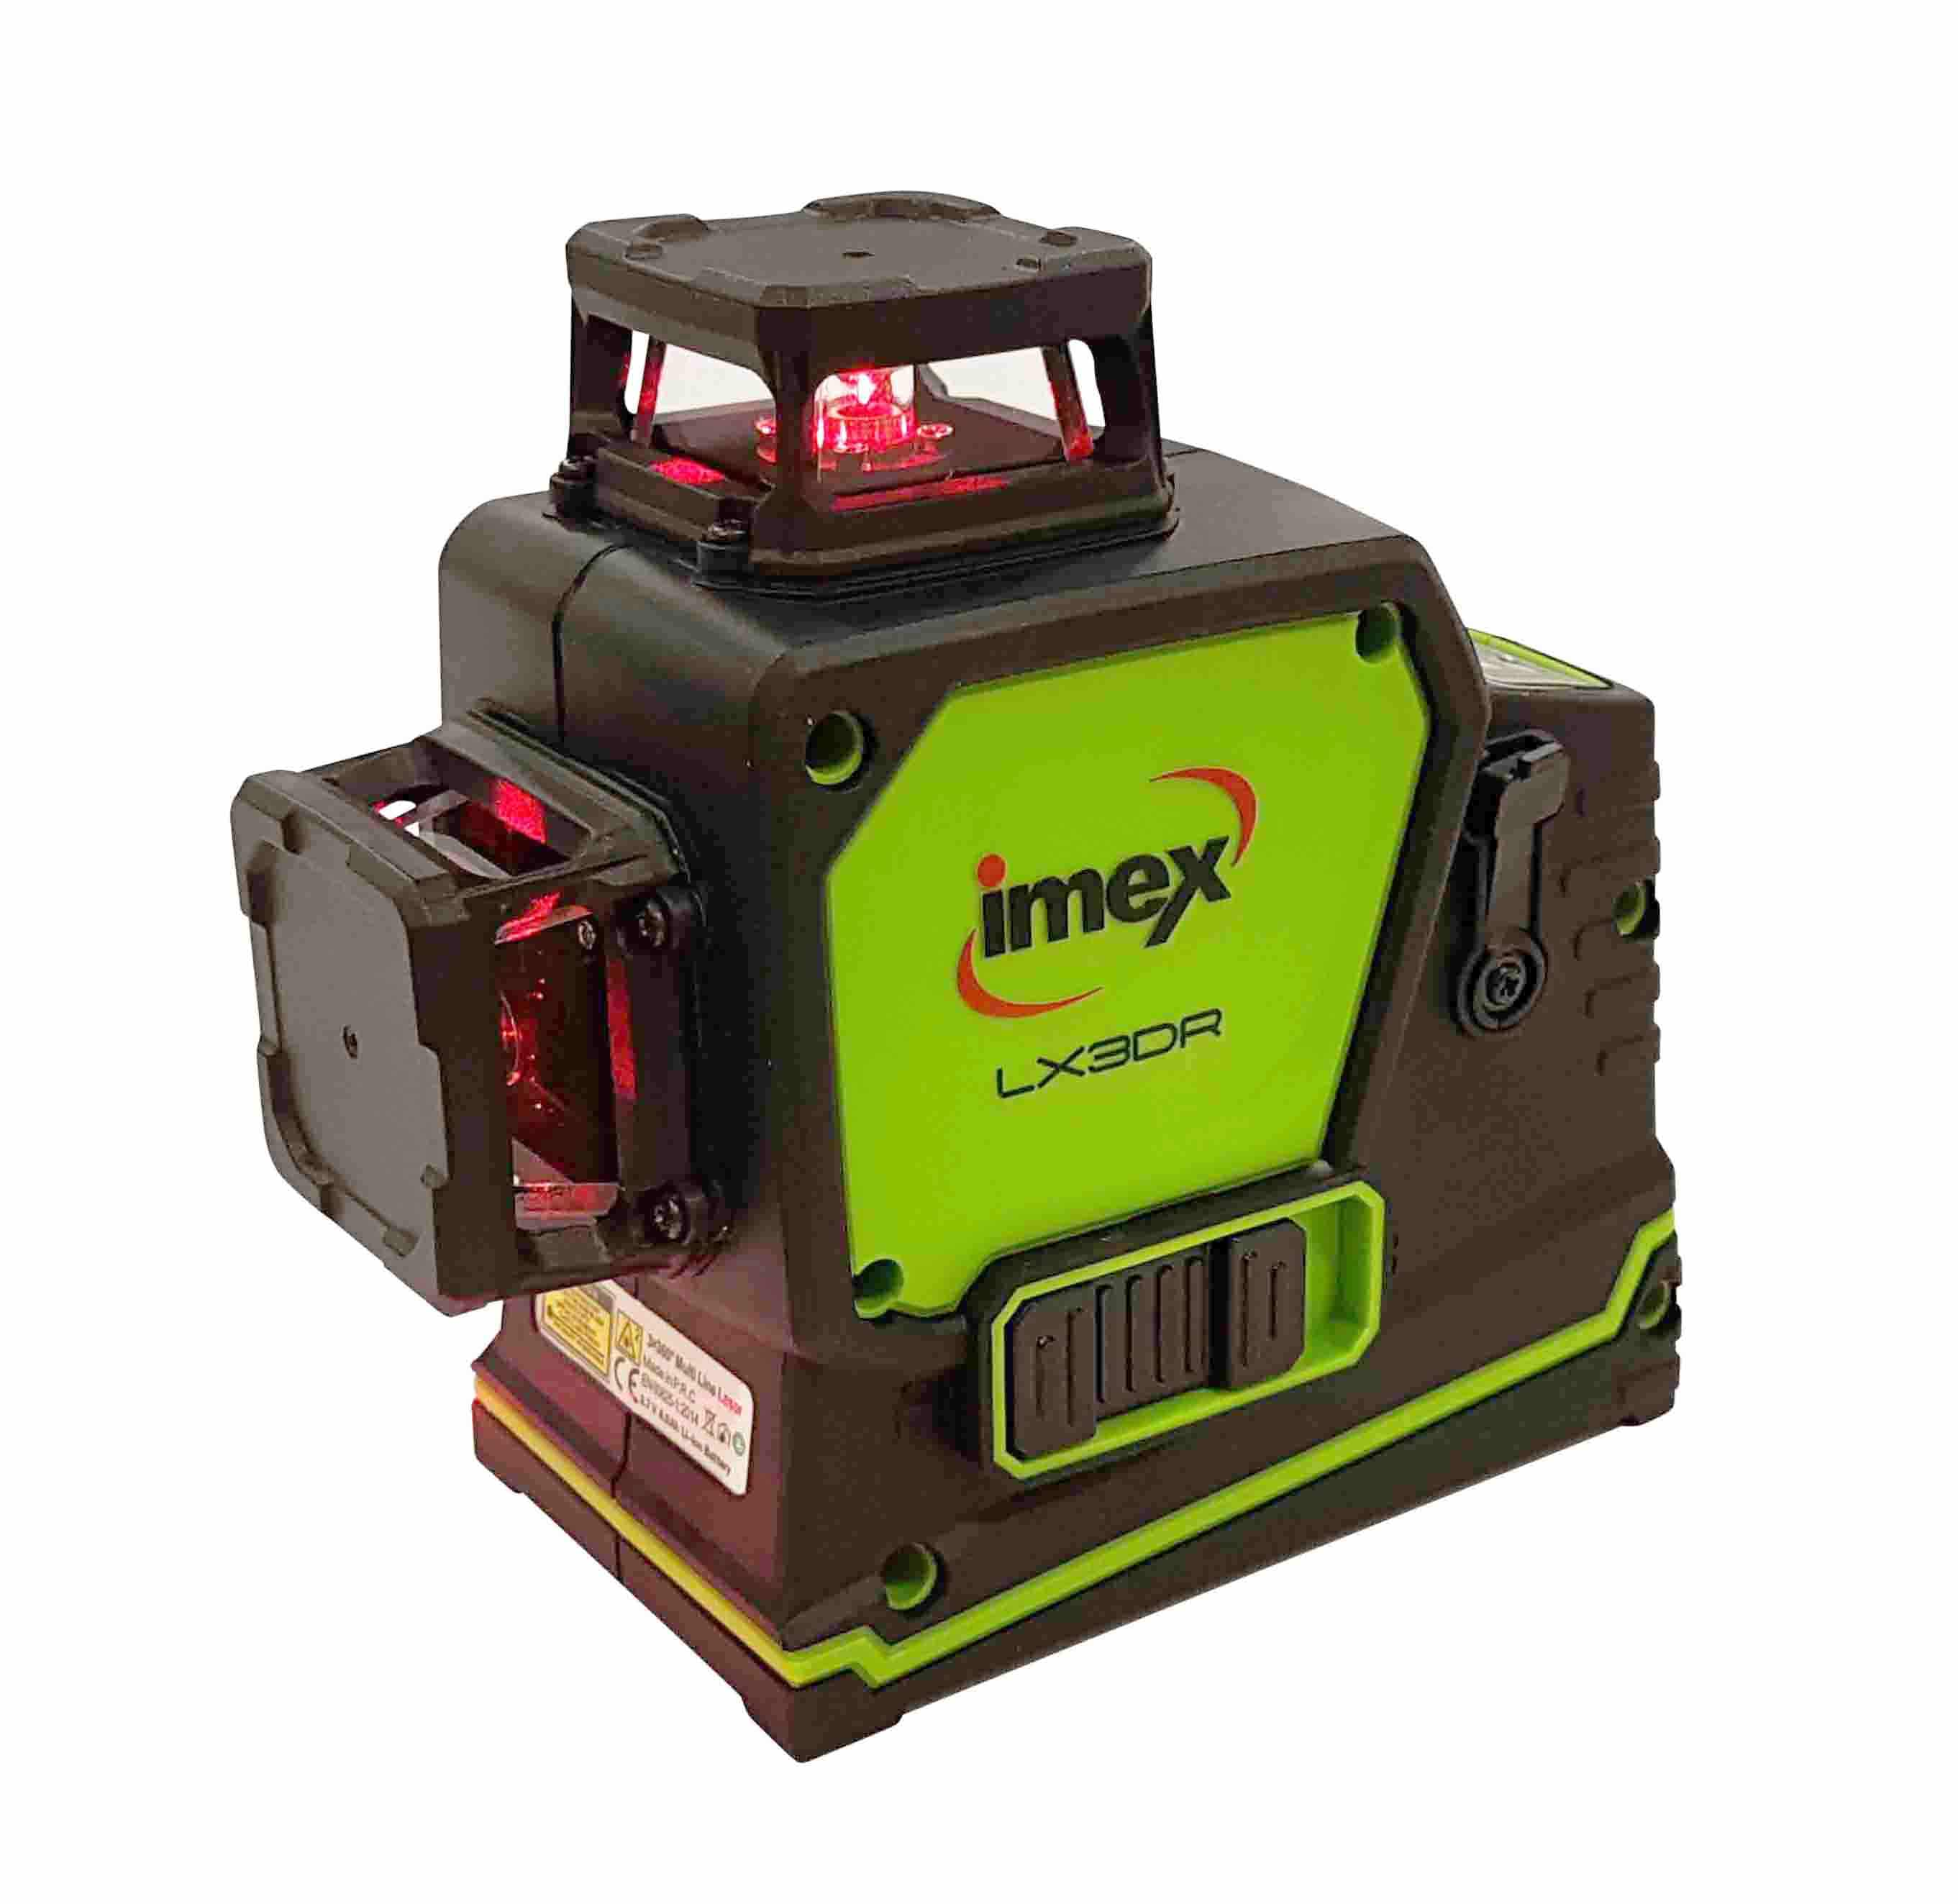 IMEX LX3DR 3 Dimensional Line Laser Level With Red/Green Beam